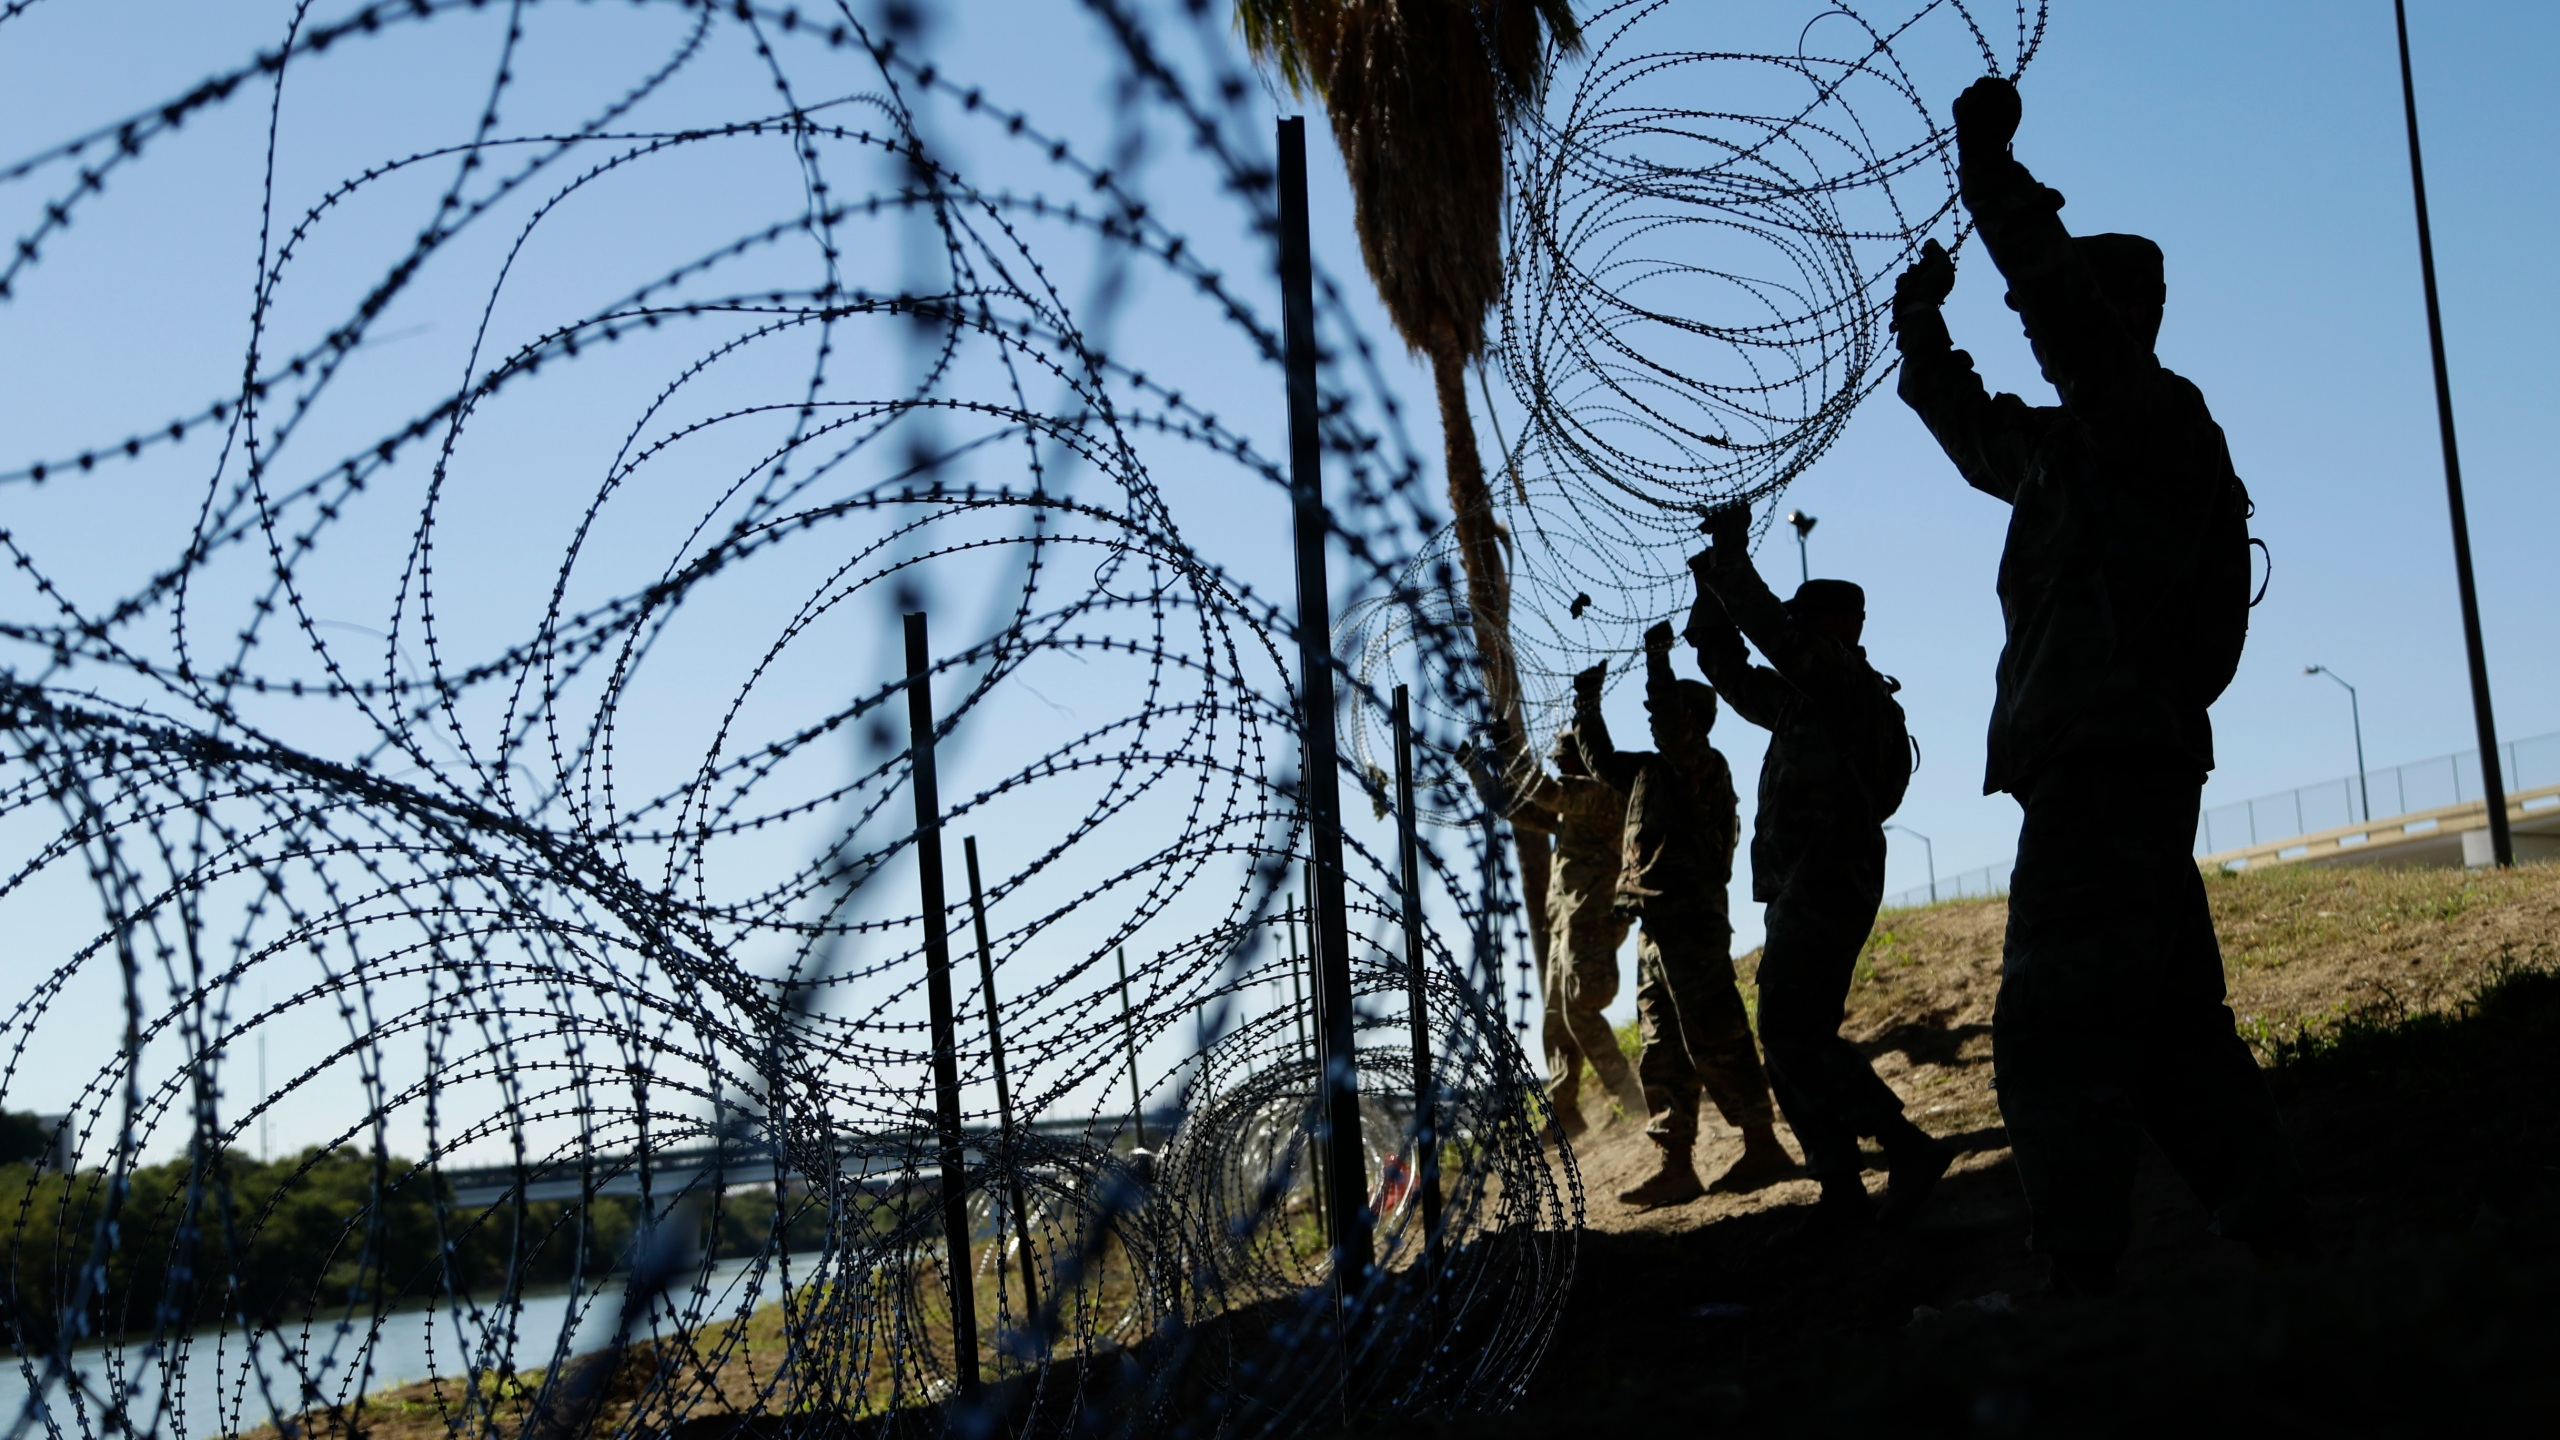 Border_Military_Troops_20652-159532.jpg24075129